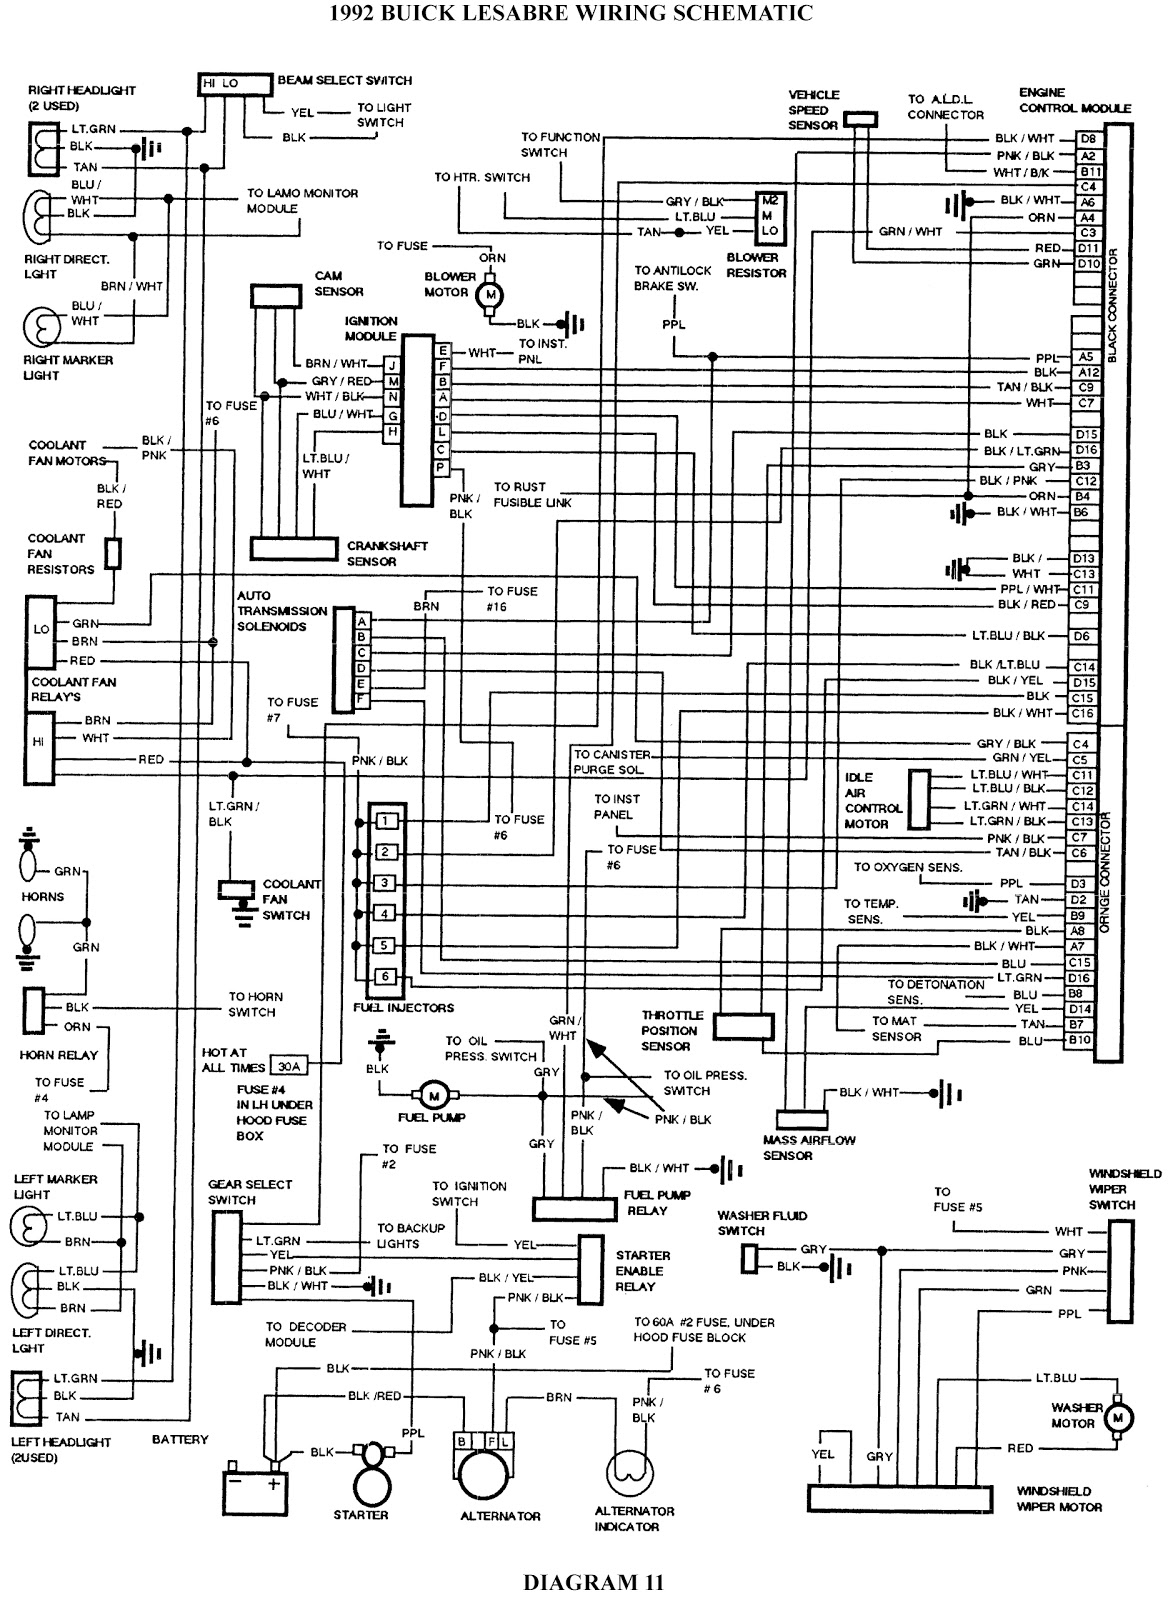 2002 buick lesabre wiring diagram full hd version wiring diagram - liza- diagram.expertsuniversity.it  diagram database